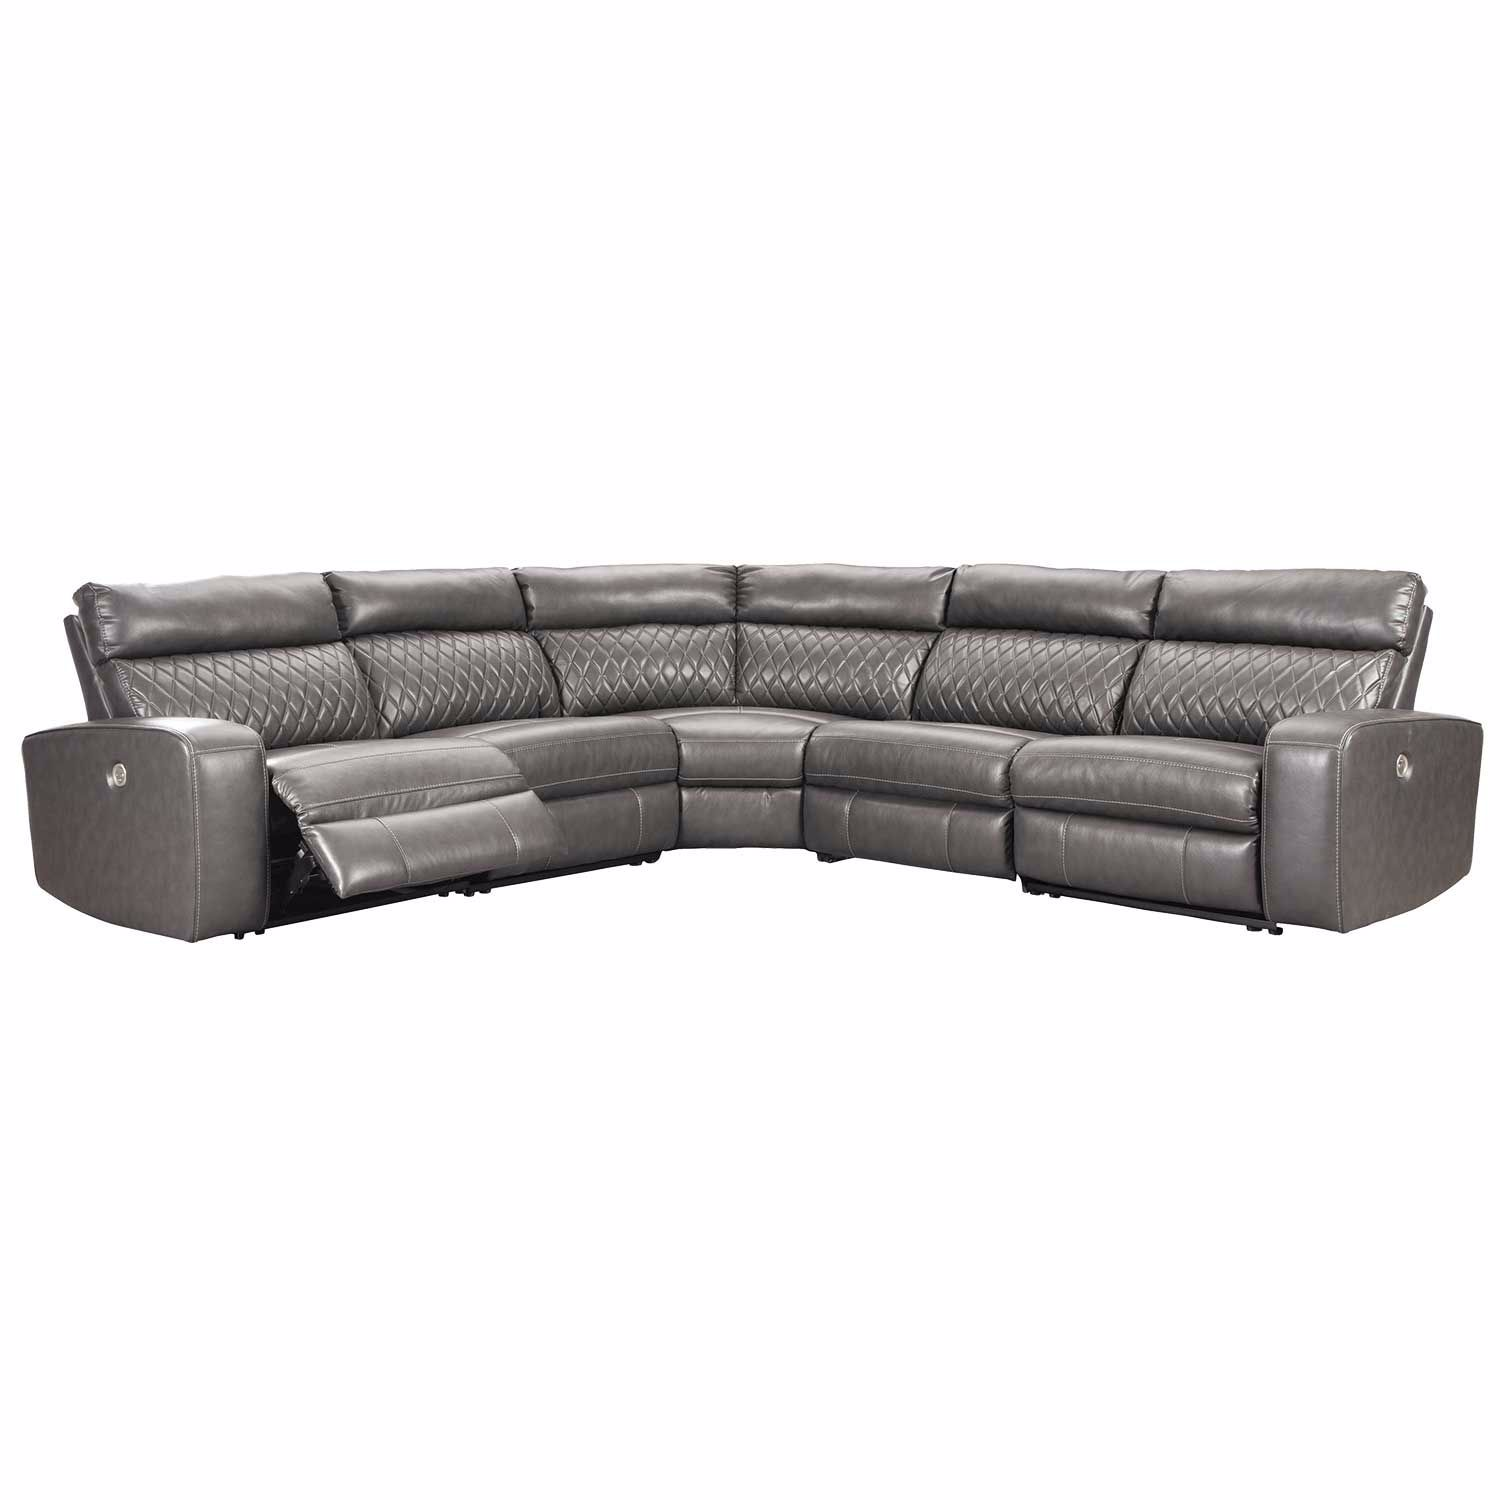 Picture of Samperstone 5PC Power Reclining Sectional